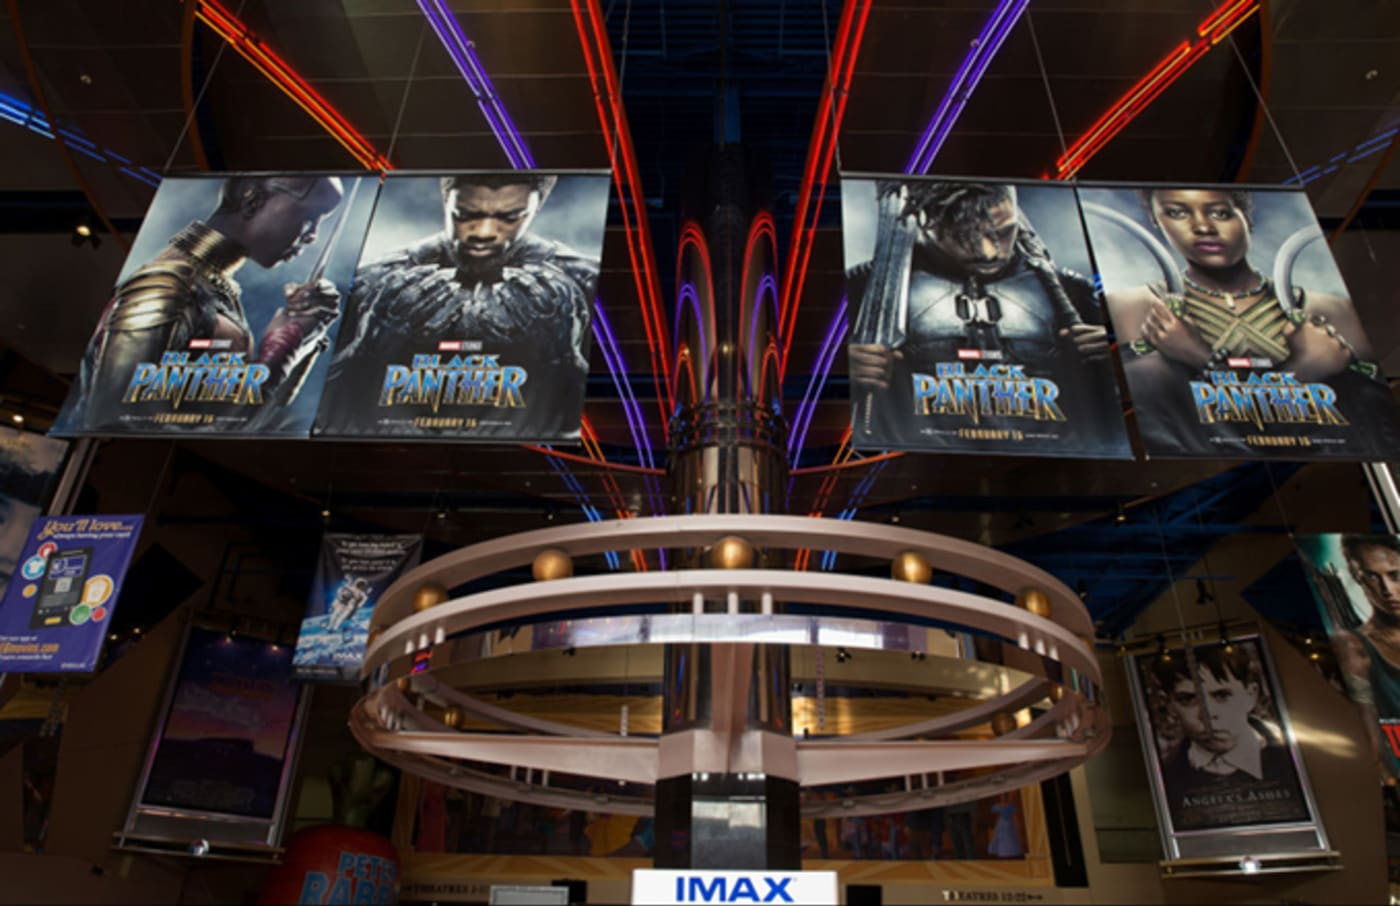 black panther theater posters getty